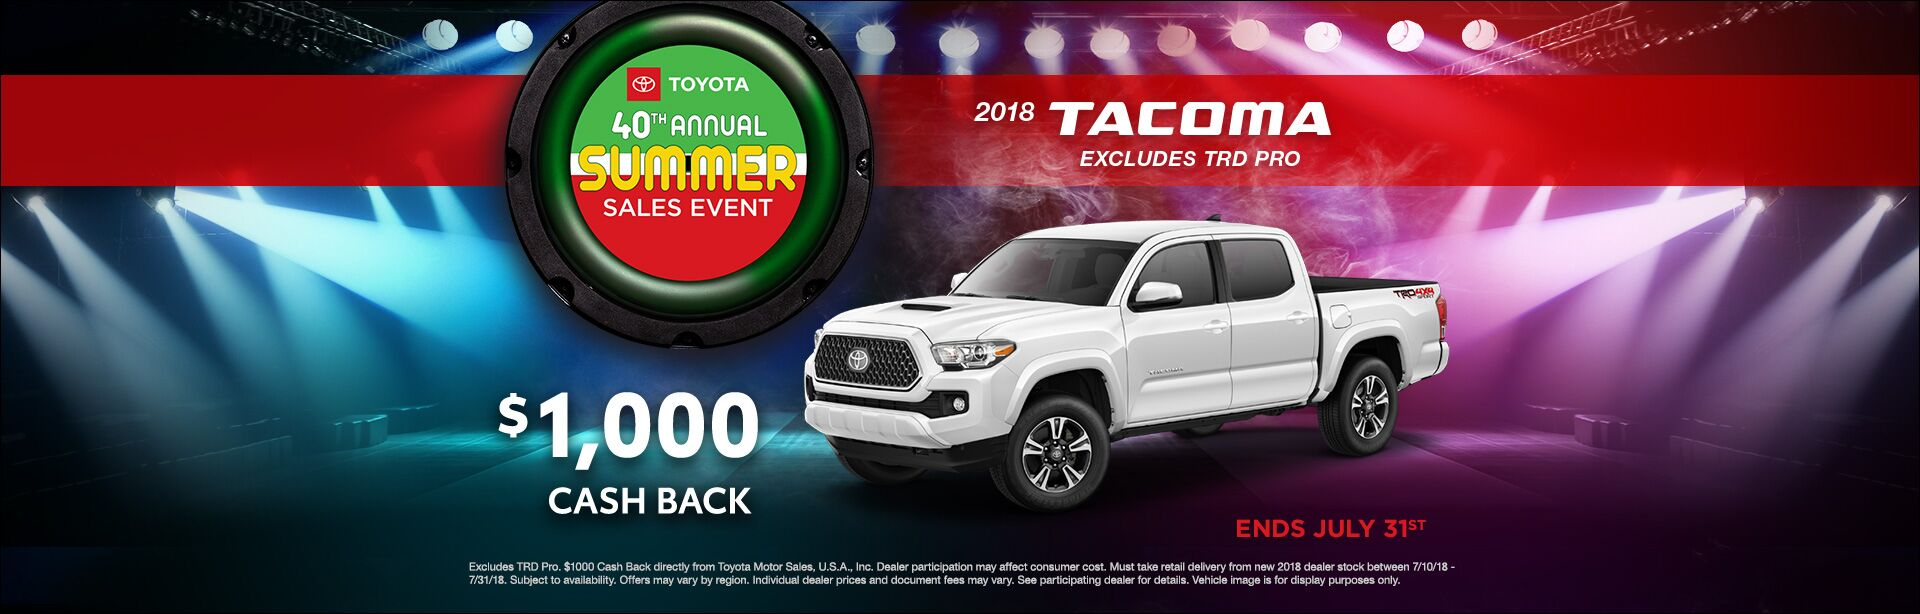 Toyota Summer Sales Event Tacoma Cash Back